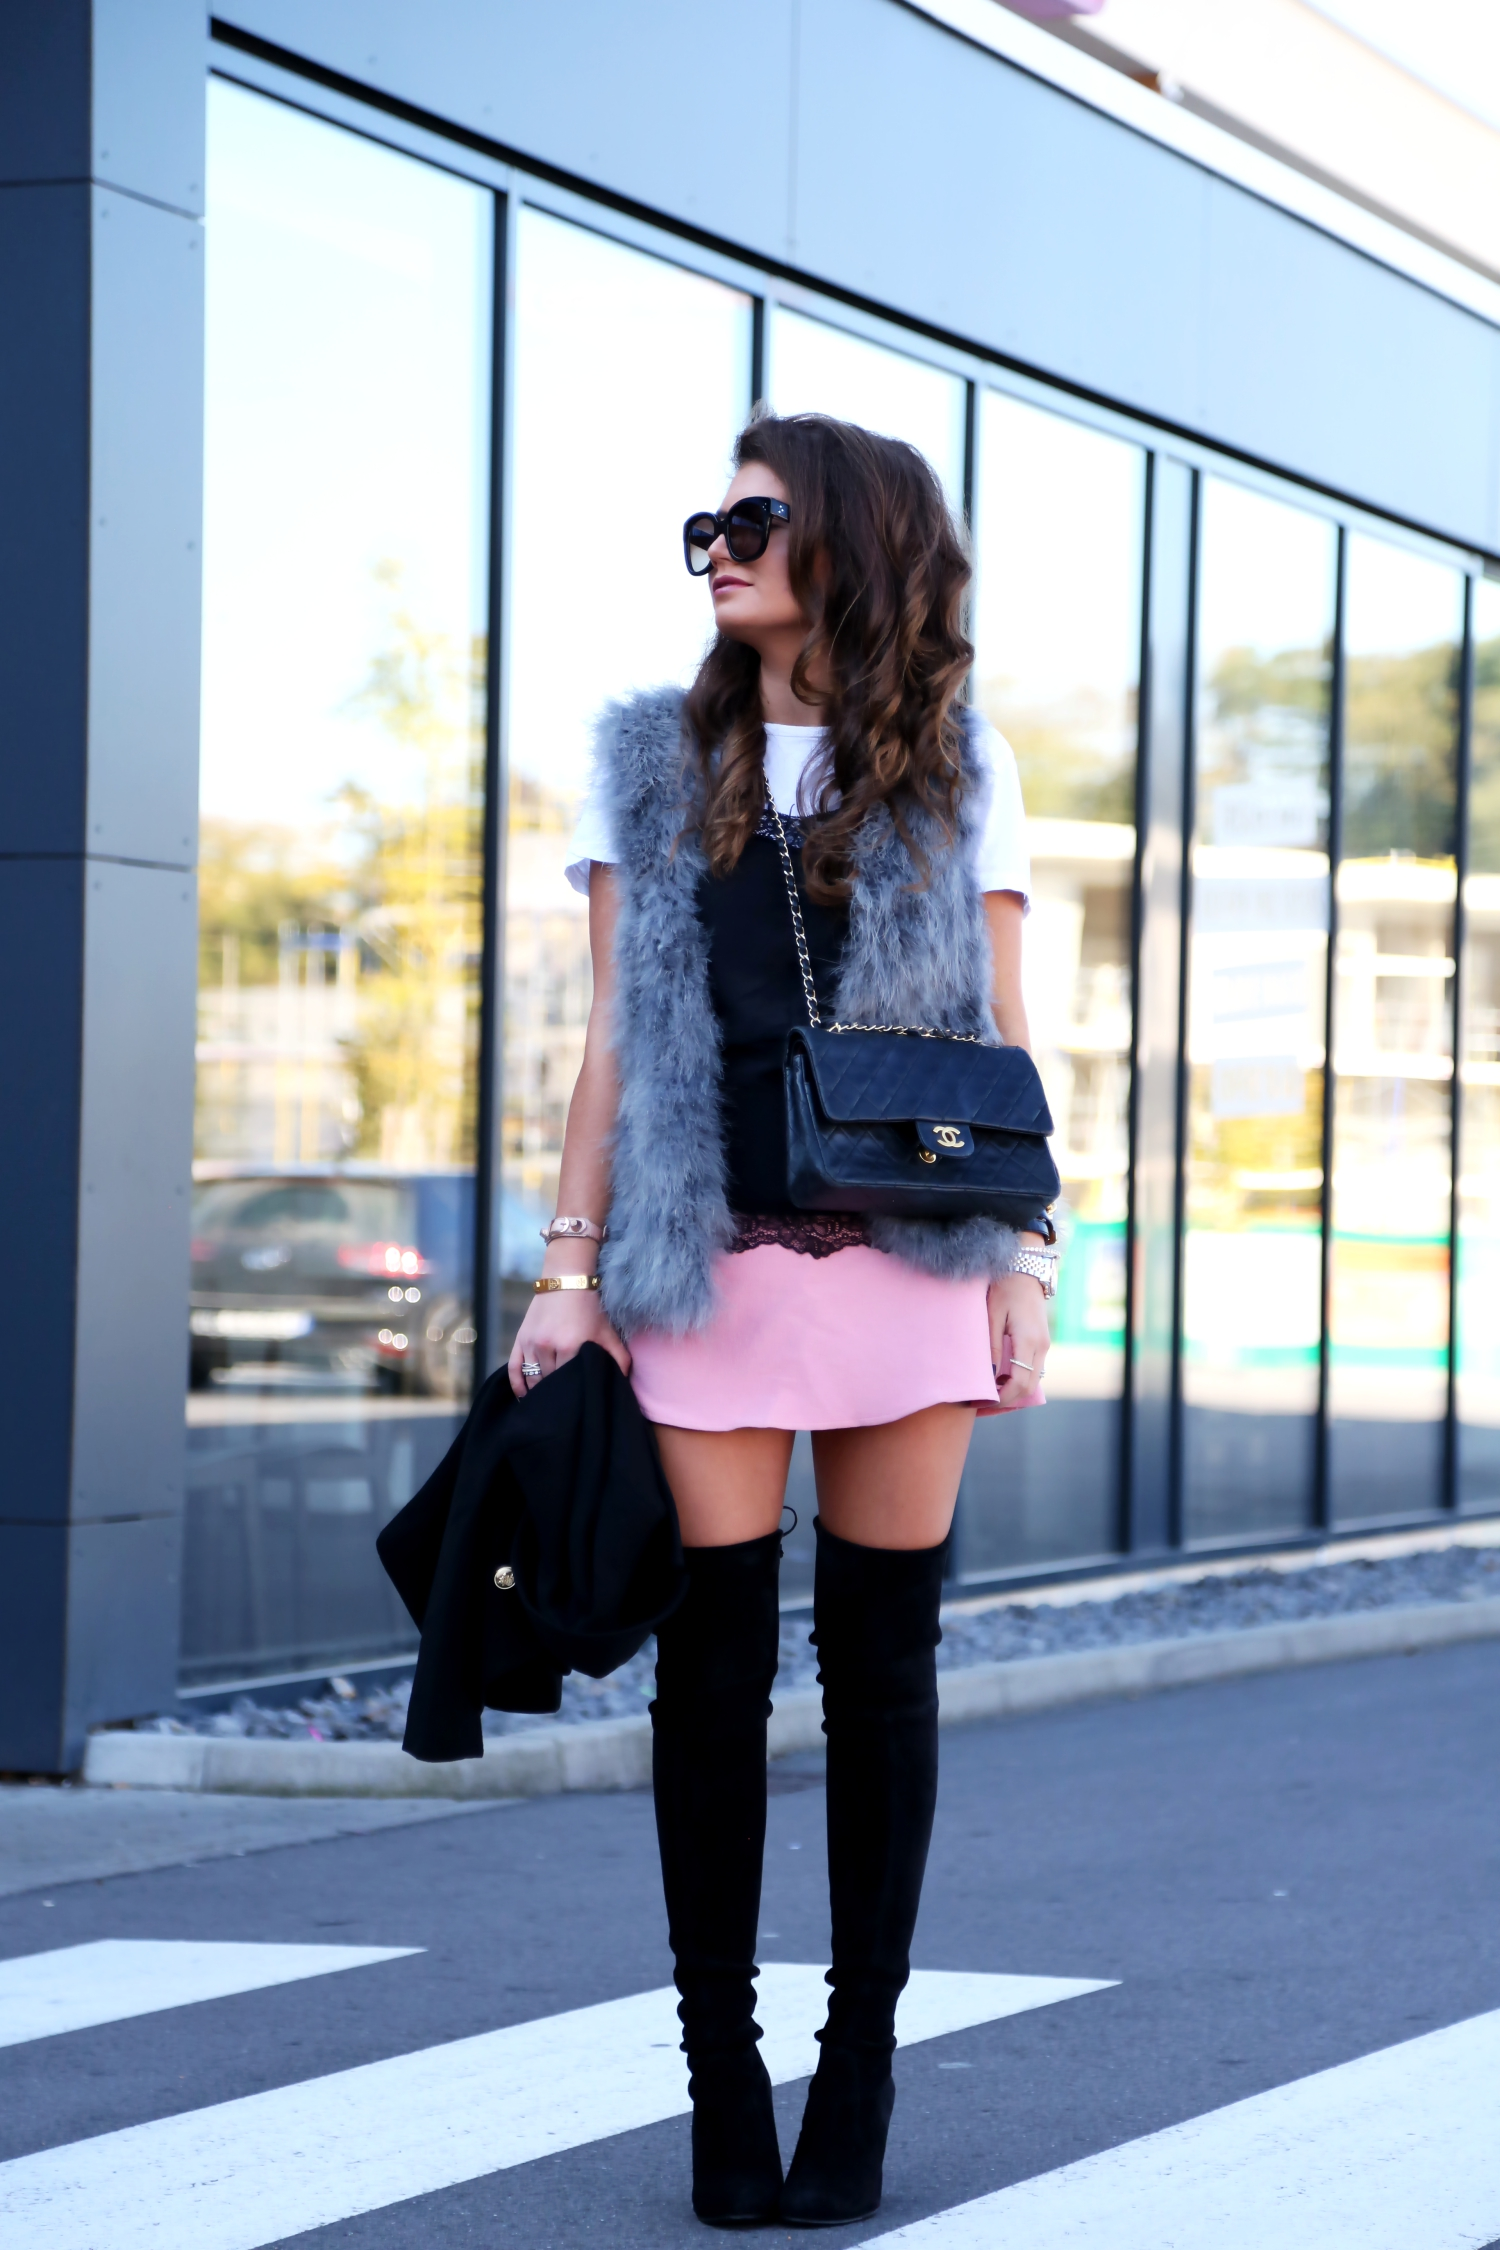 outfit-fall-overknees-lace-top-t-shirt-skirt-black-pink